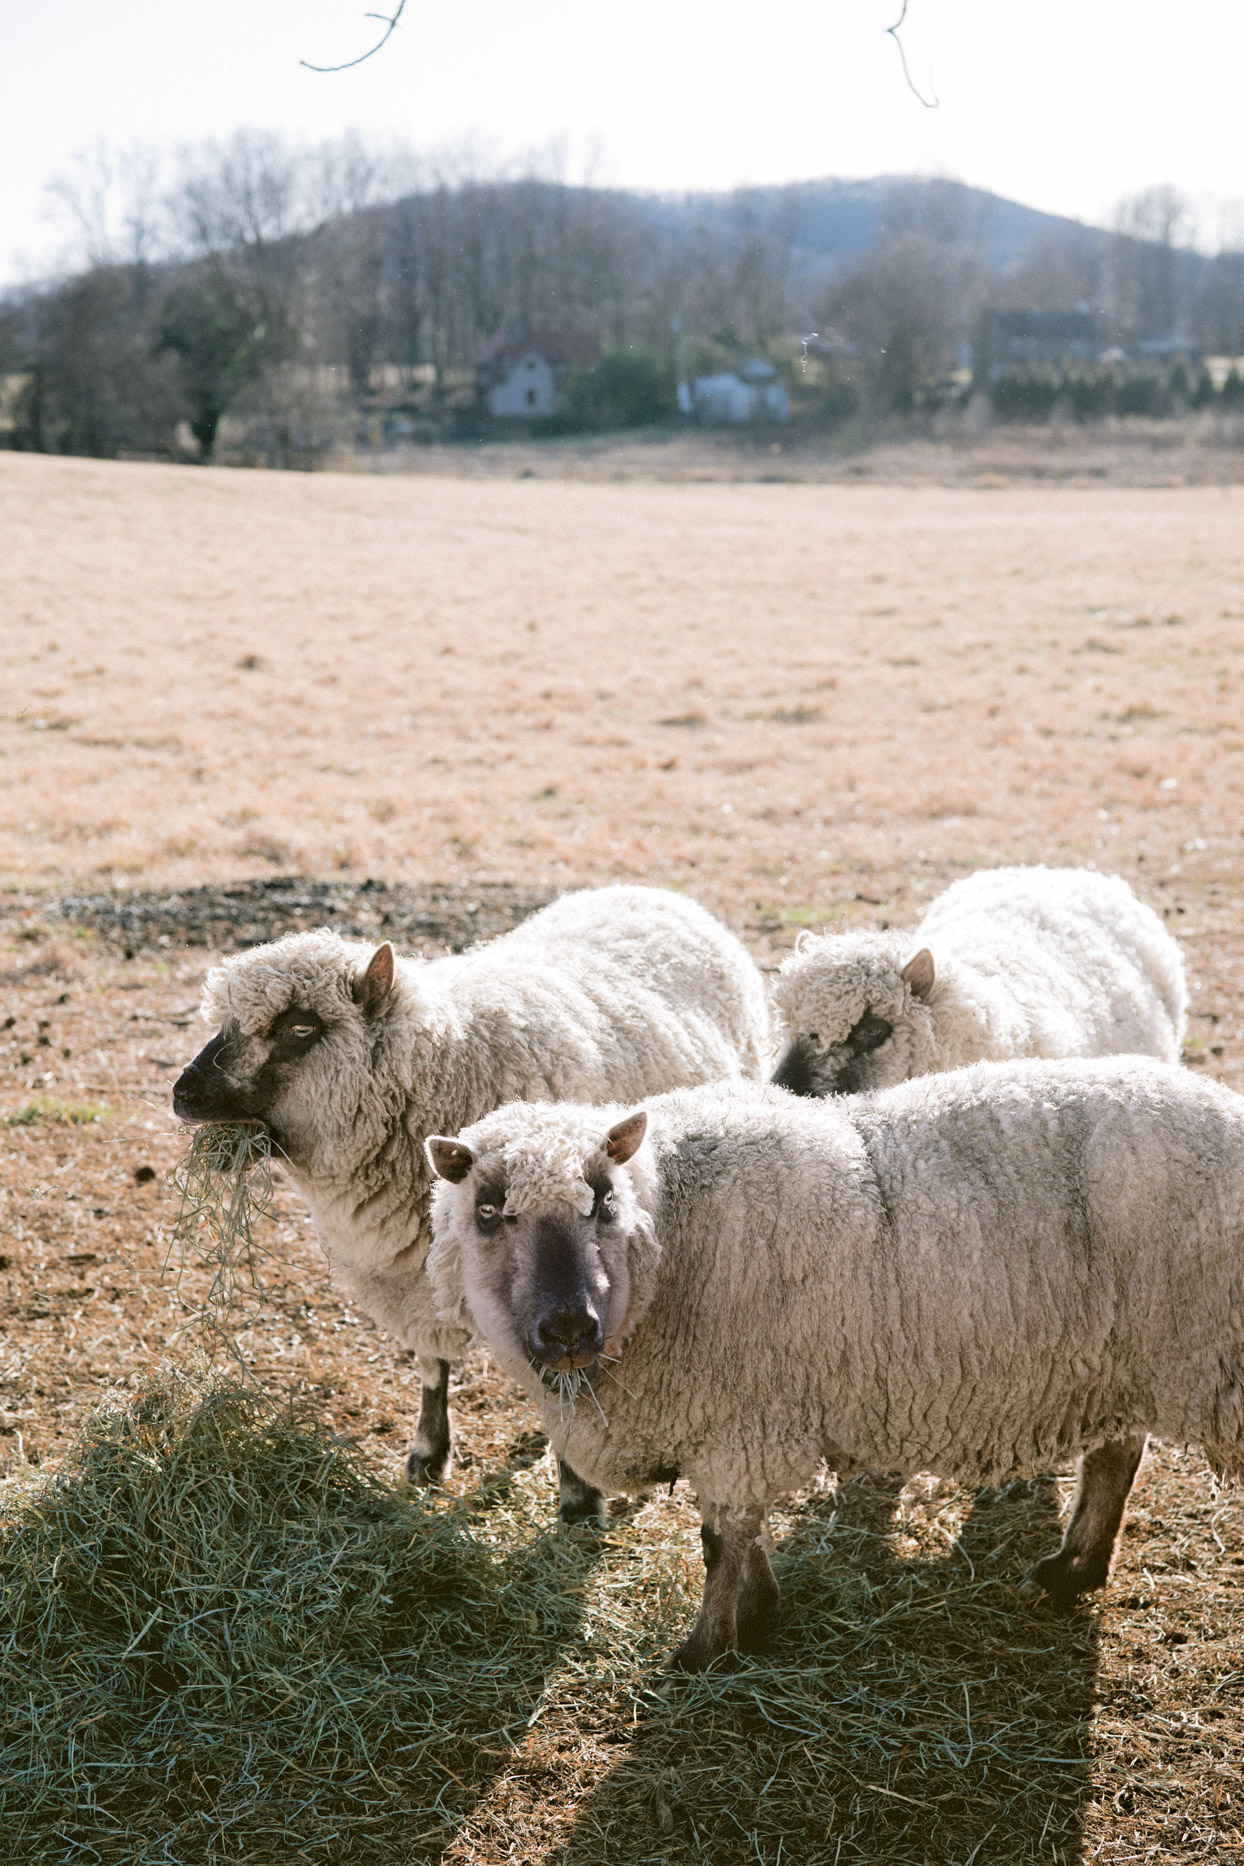 sheep eating in outdoor field area